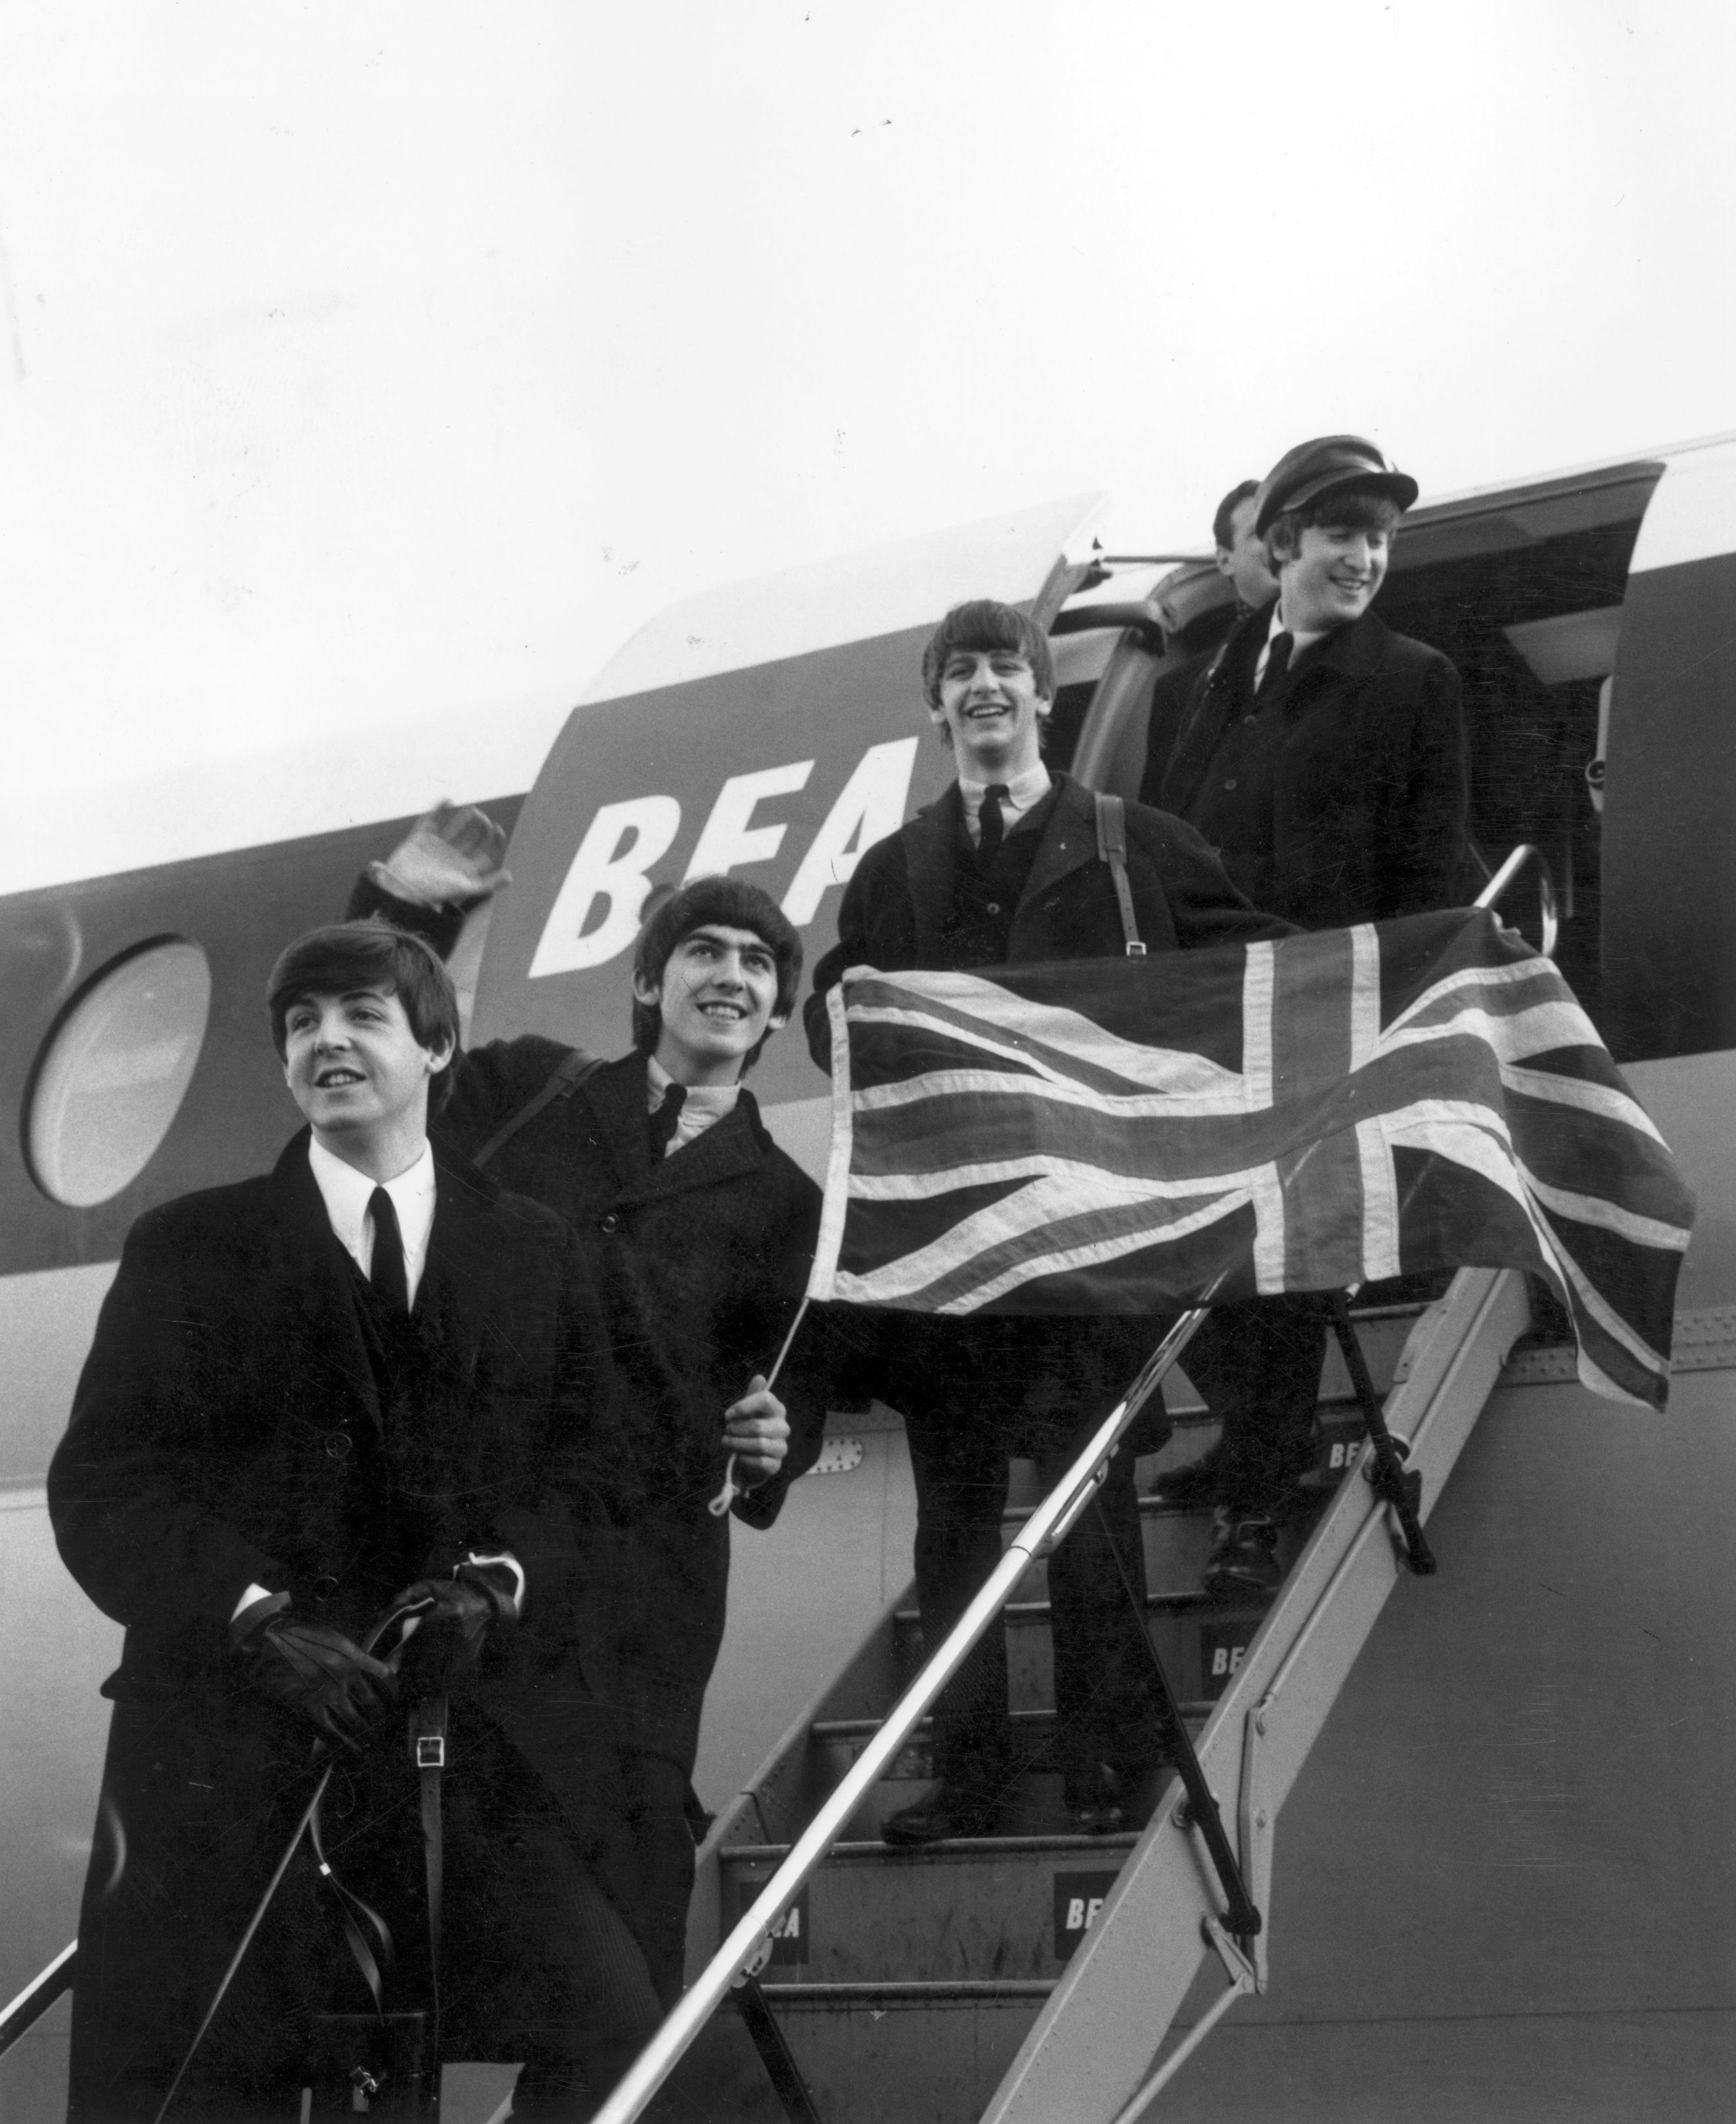 Ringo Starr Revealed As 'Brexit Beatle' Prompts #BrexitBeatlesSongs